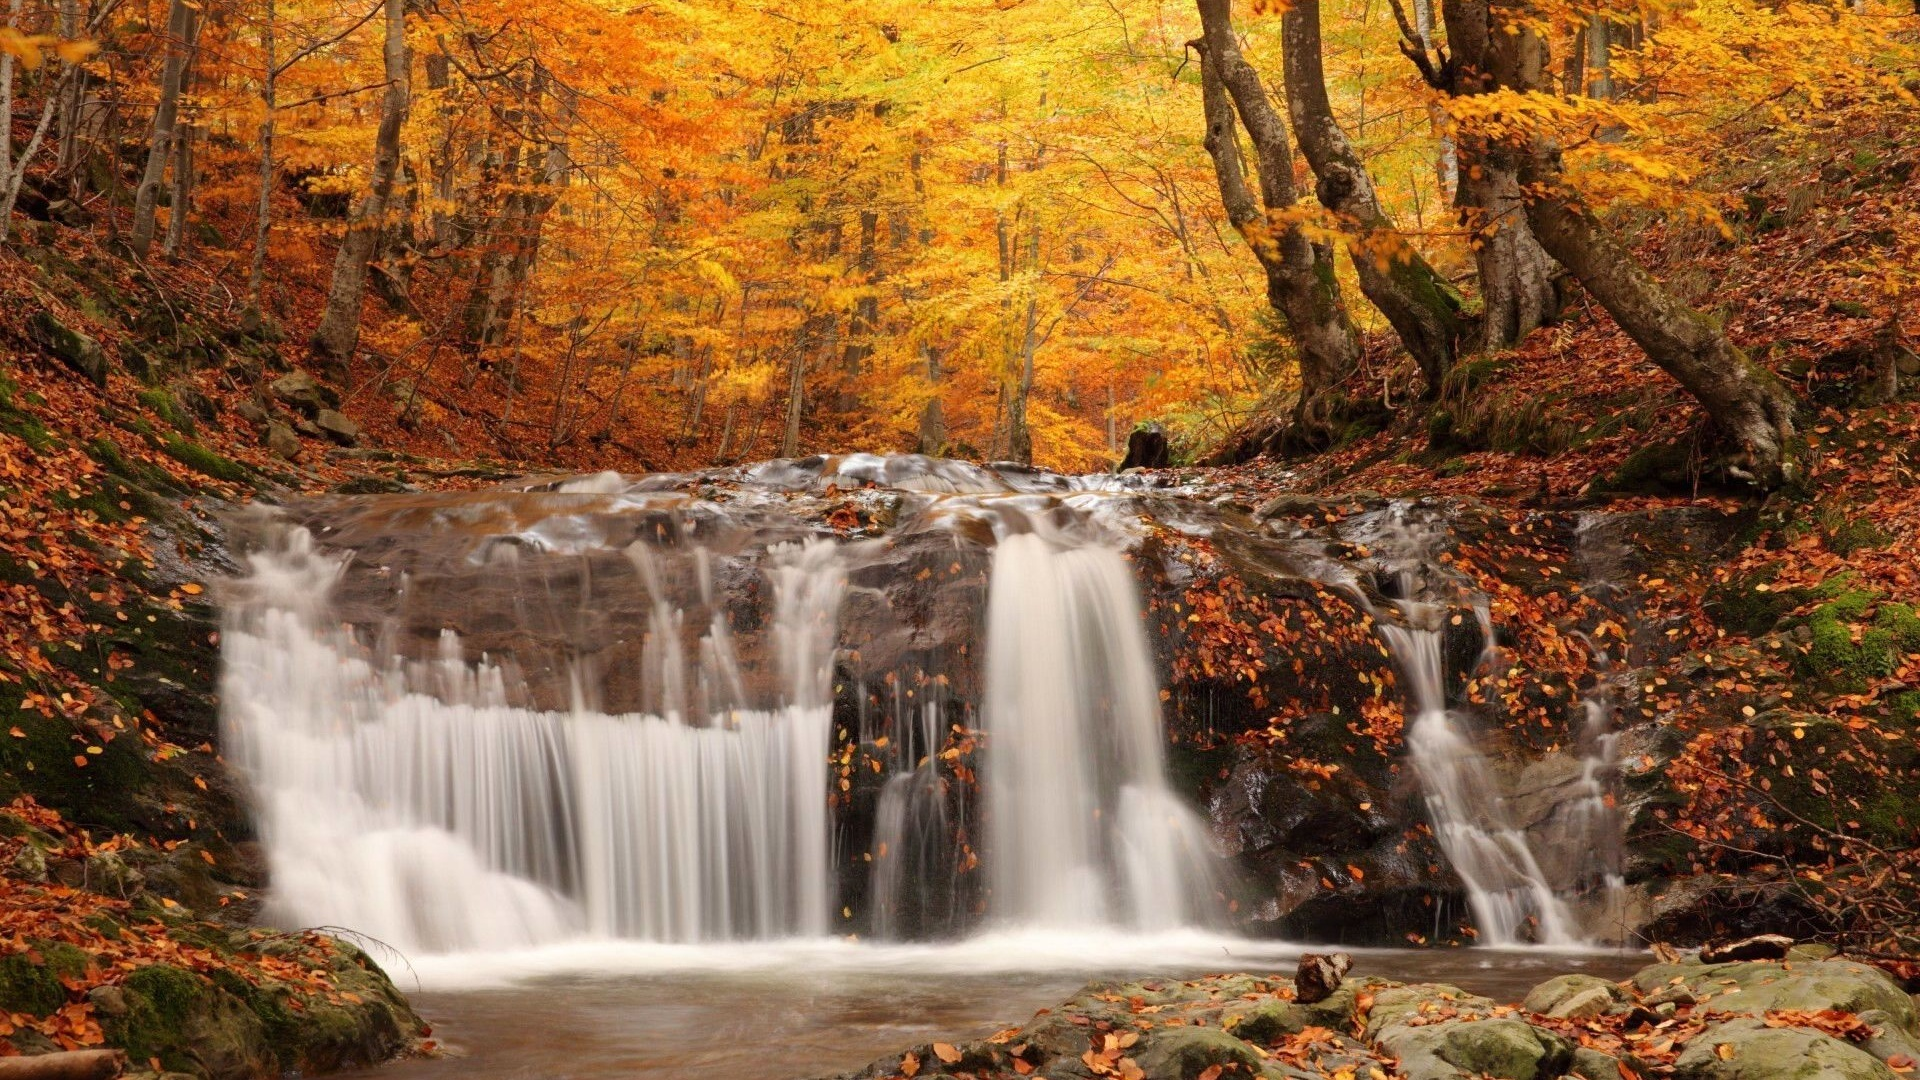 landscapes nature waterfall rivers trees forest autumn fall seasons leaves colors